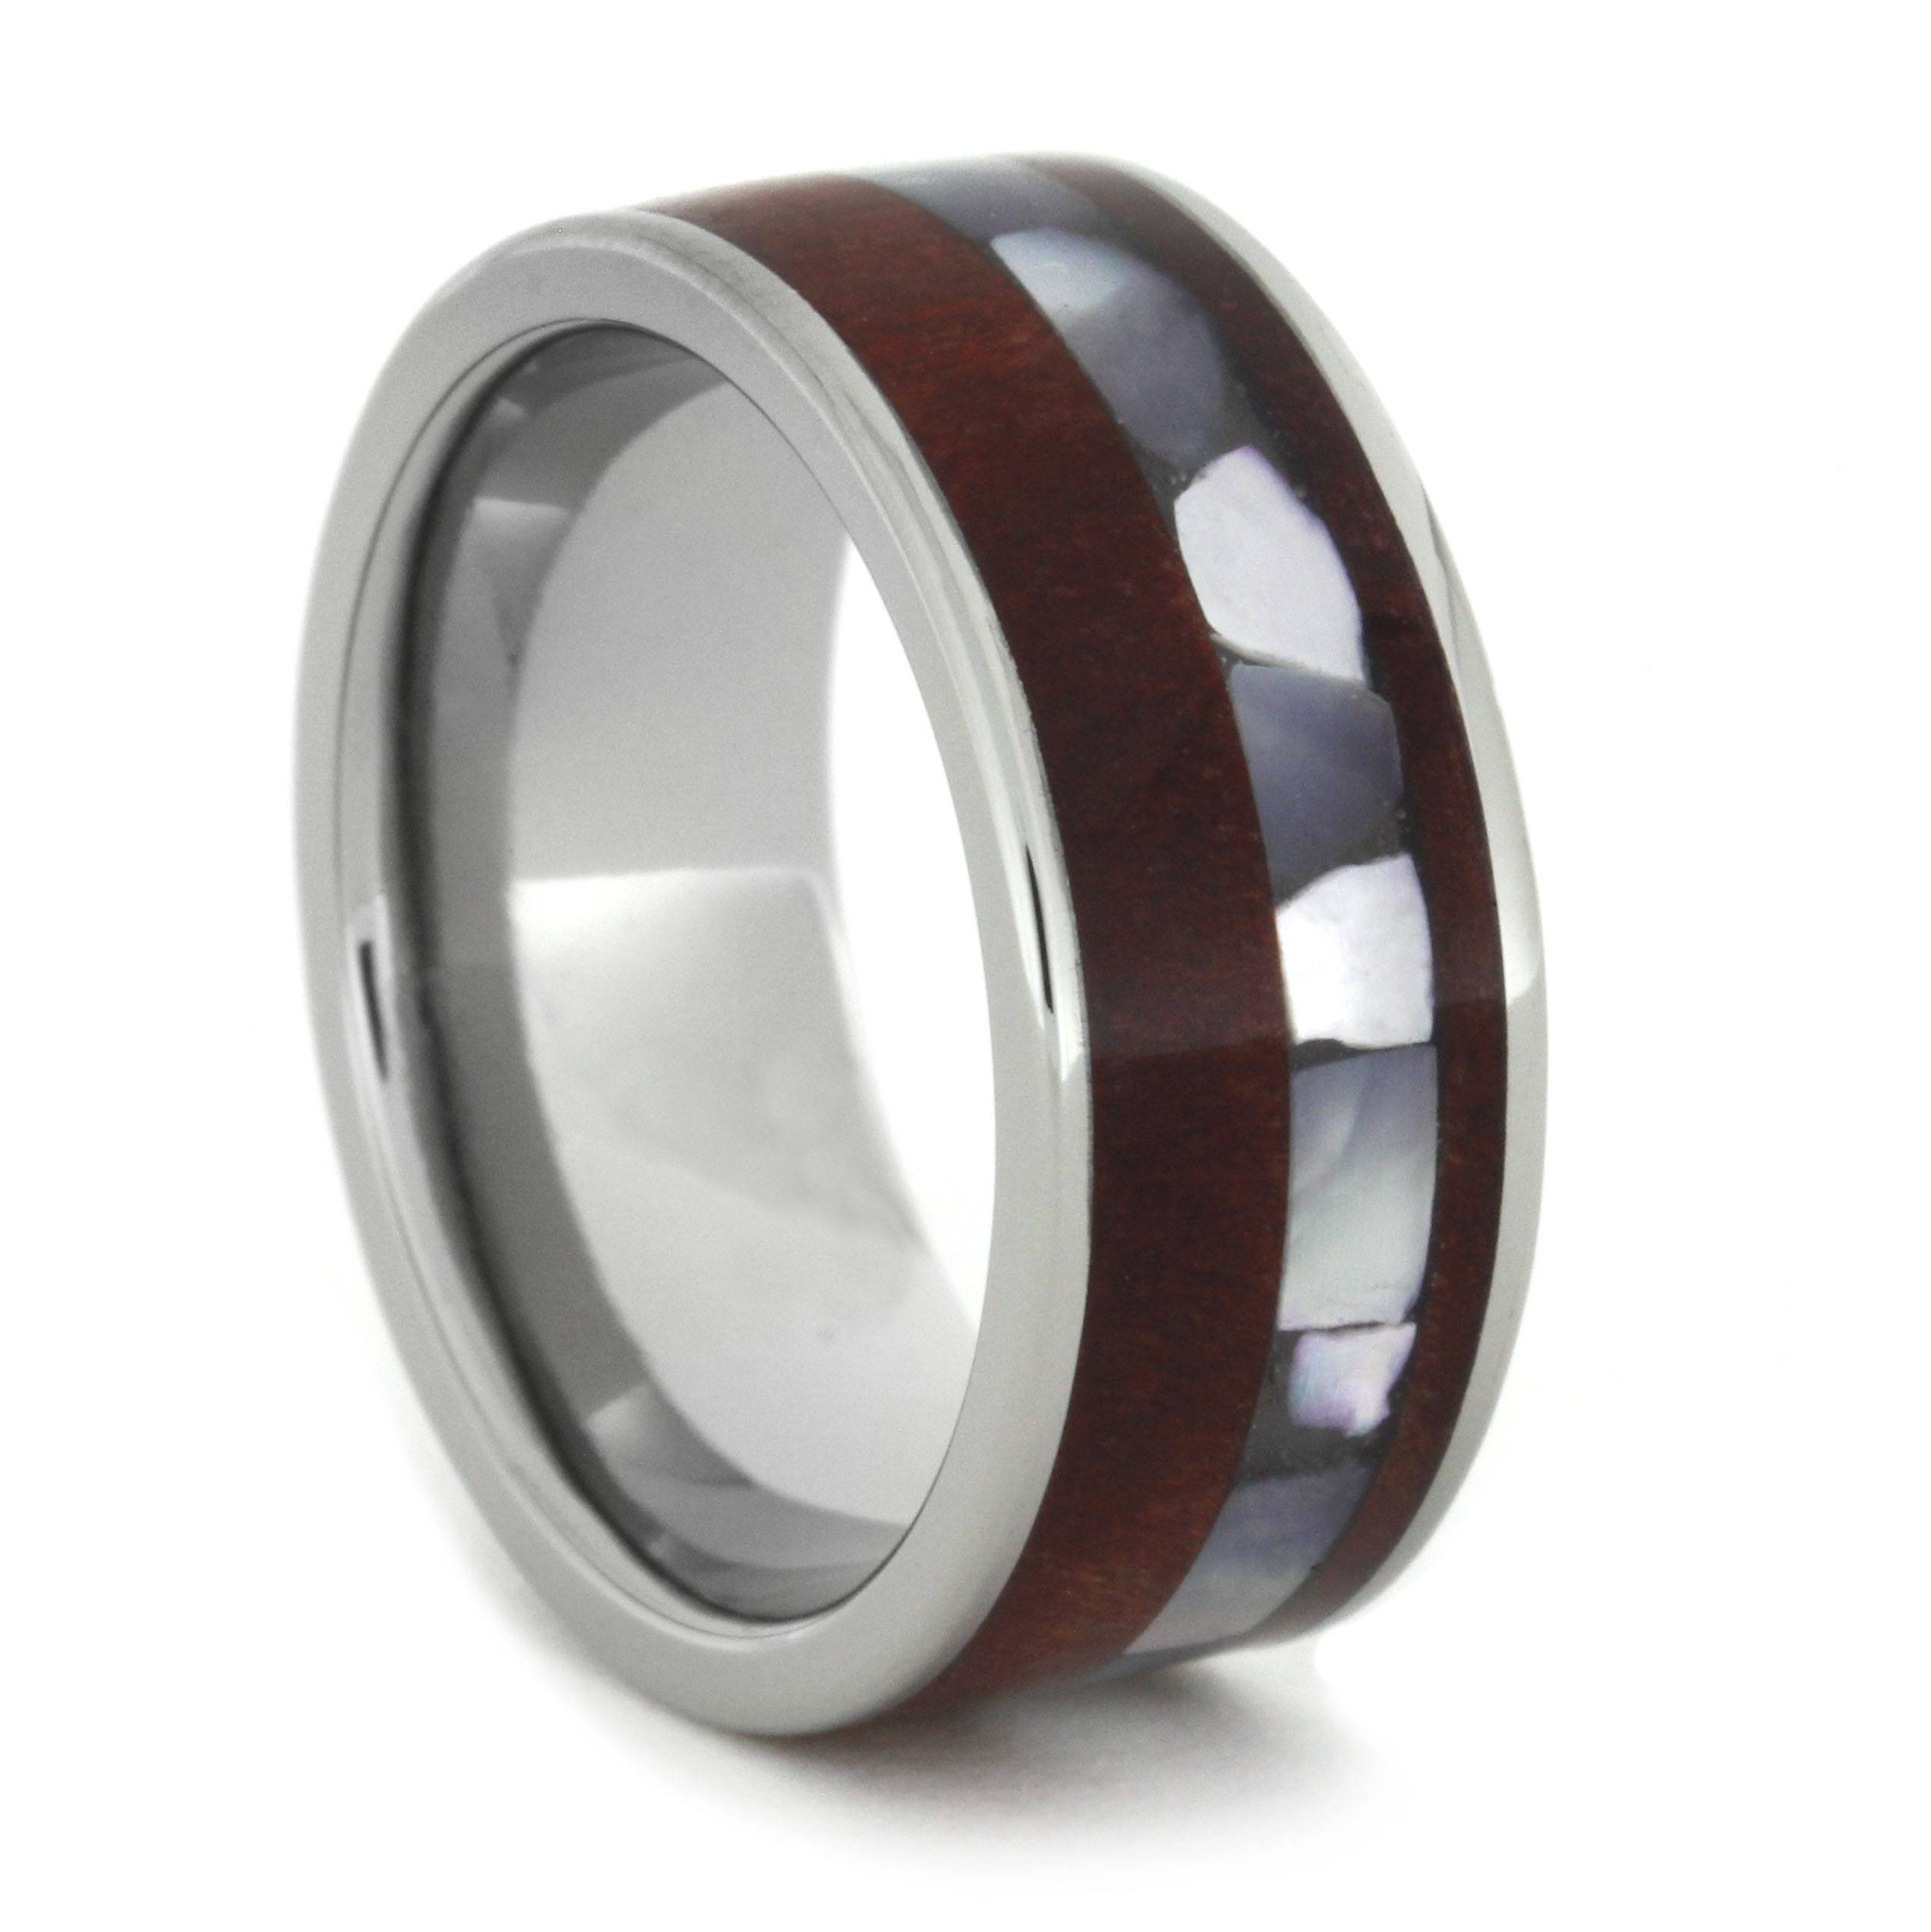 Mother Of Pearl Ring With Ruby Redwood In A Titanium Band Within Mother Of Pearl Wedding Bands (View 6 of 15)